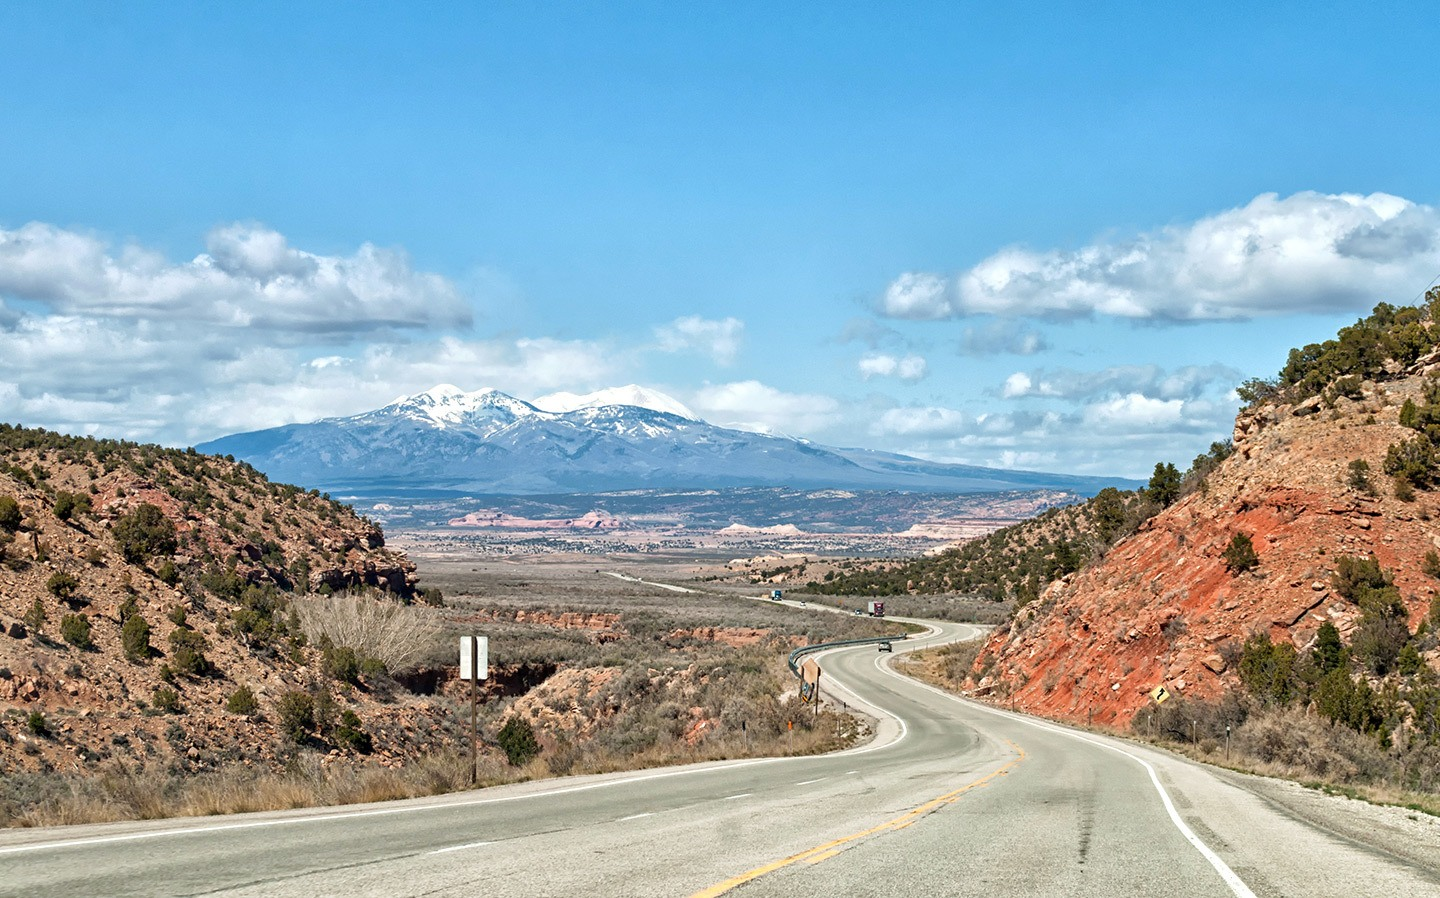 5 of the best southwest USA scenic drives across Arizona, Utah and New Mexico, driving routes through snow-capped mountains, red rocks and sandy deserts.